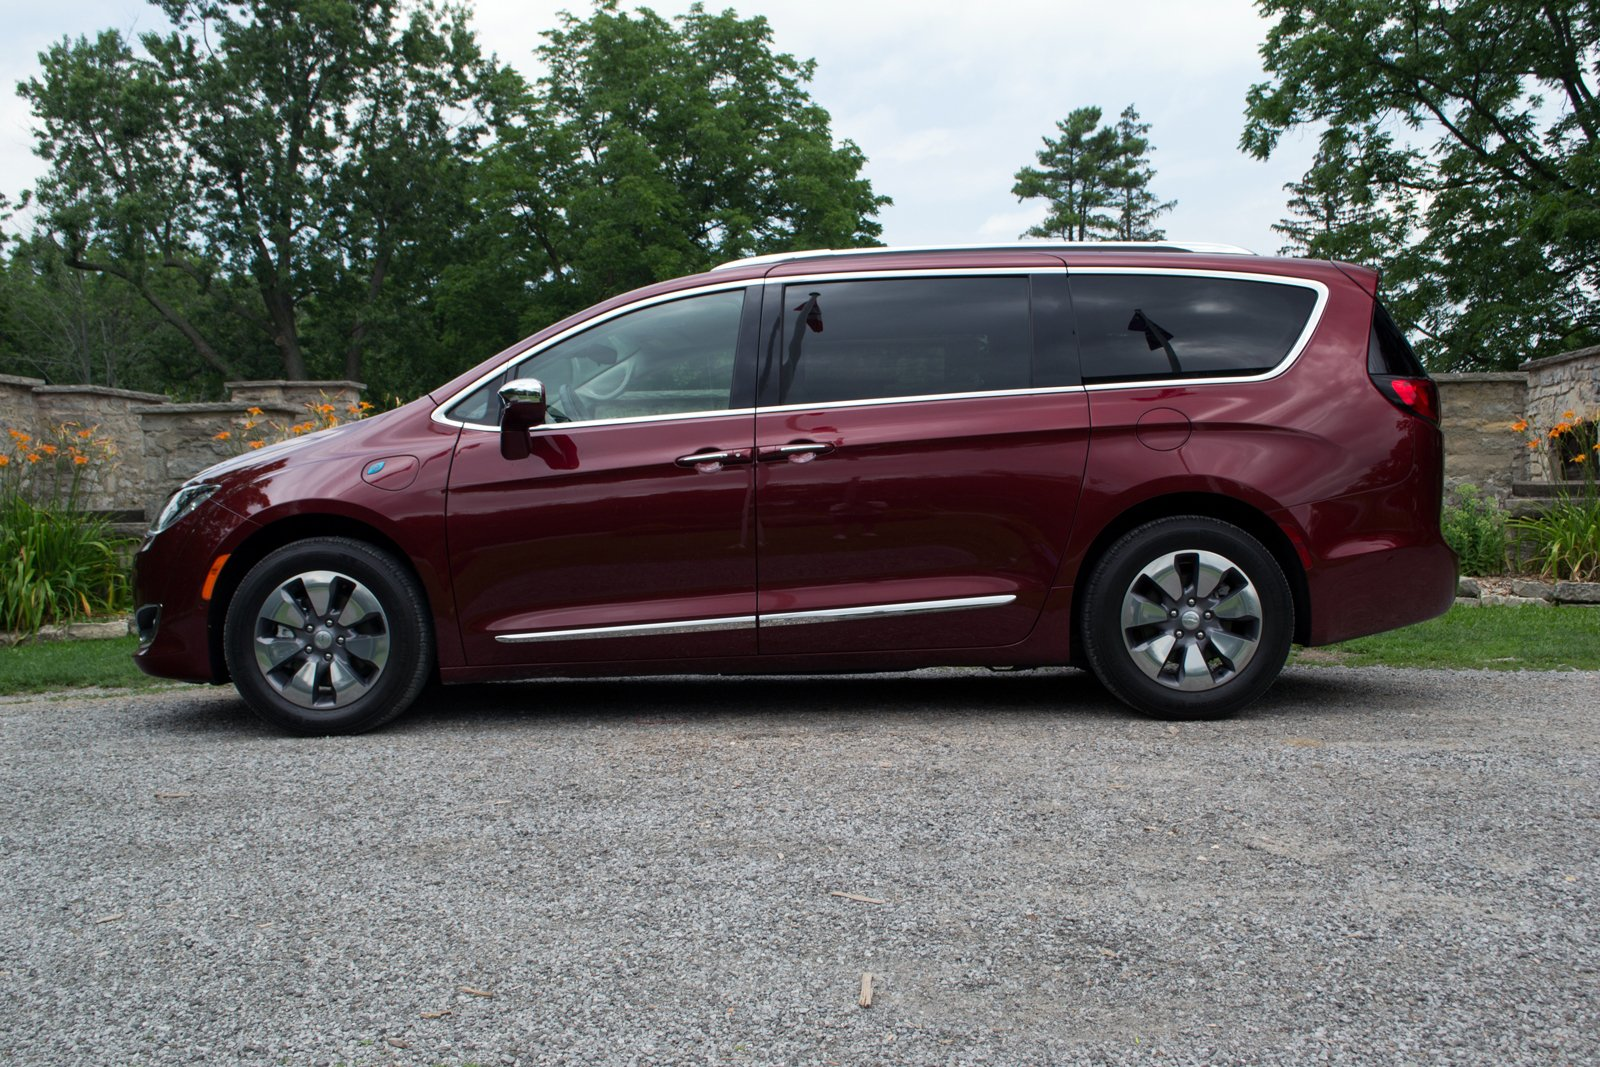 2017 Chrysler Pacifica Hybrid Ilika 1600x1067 015